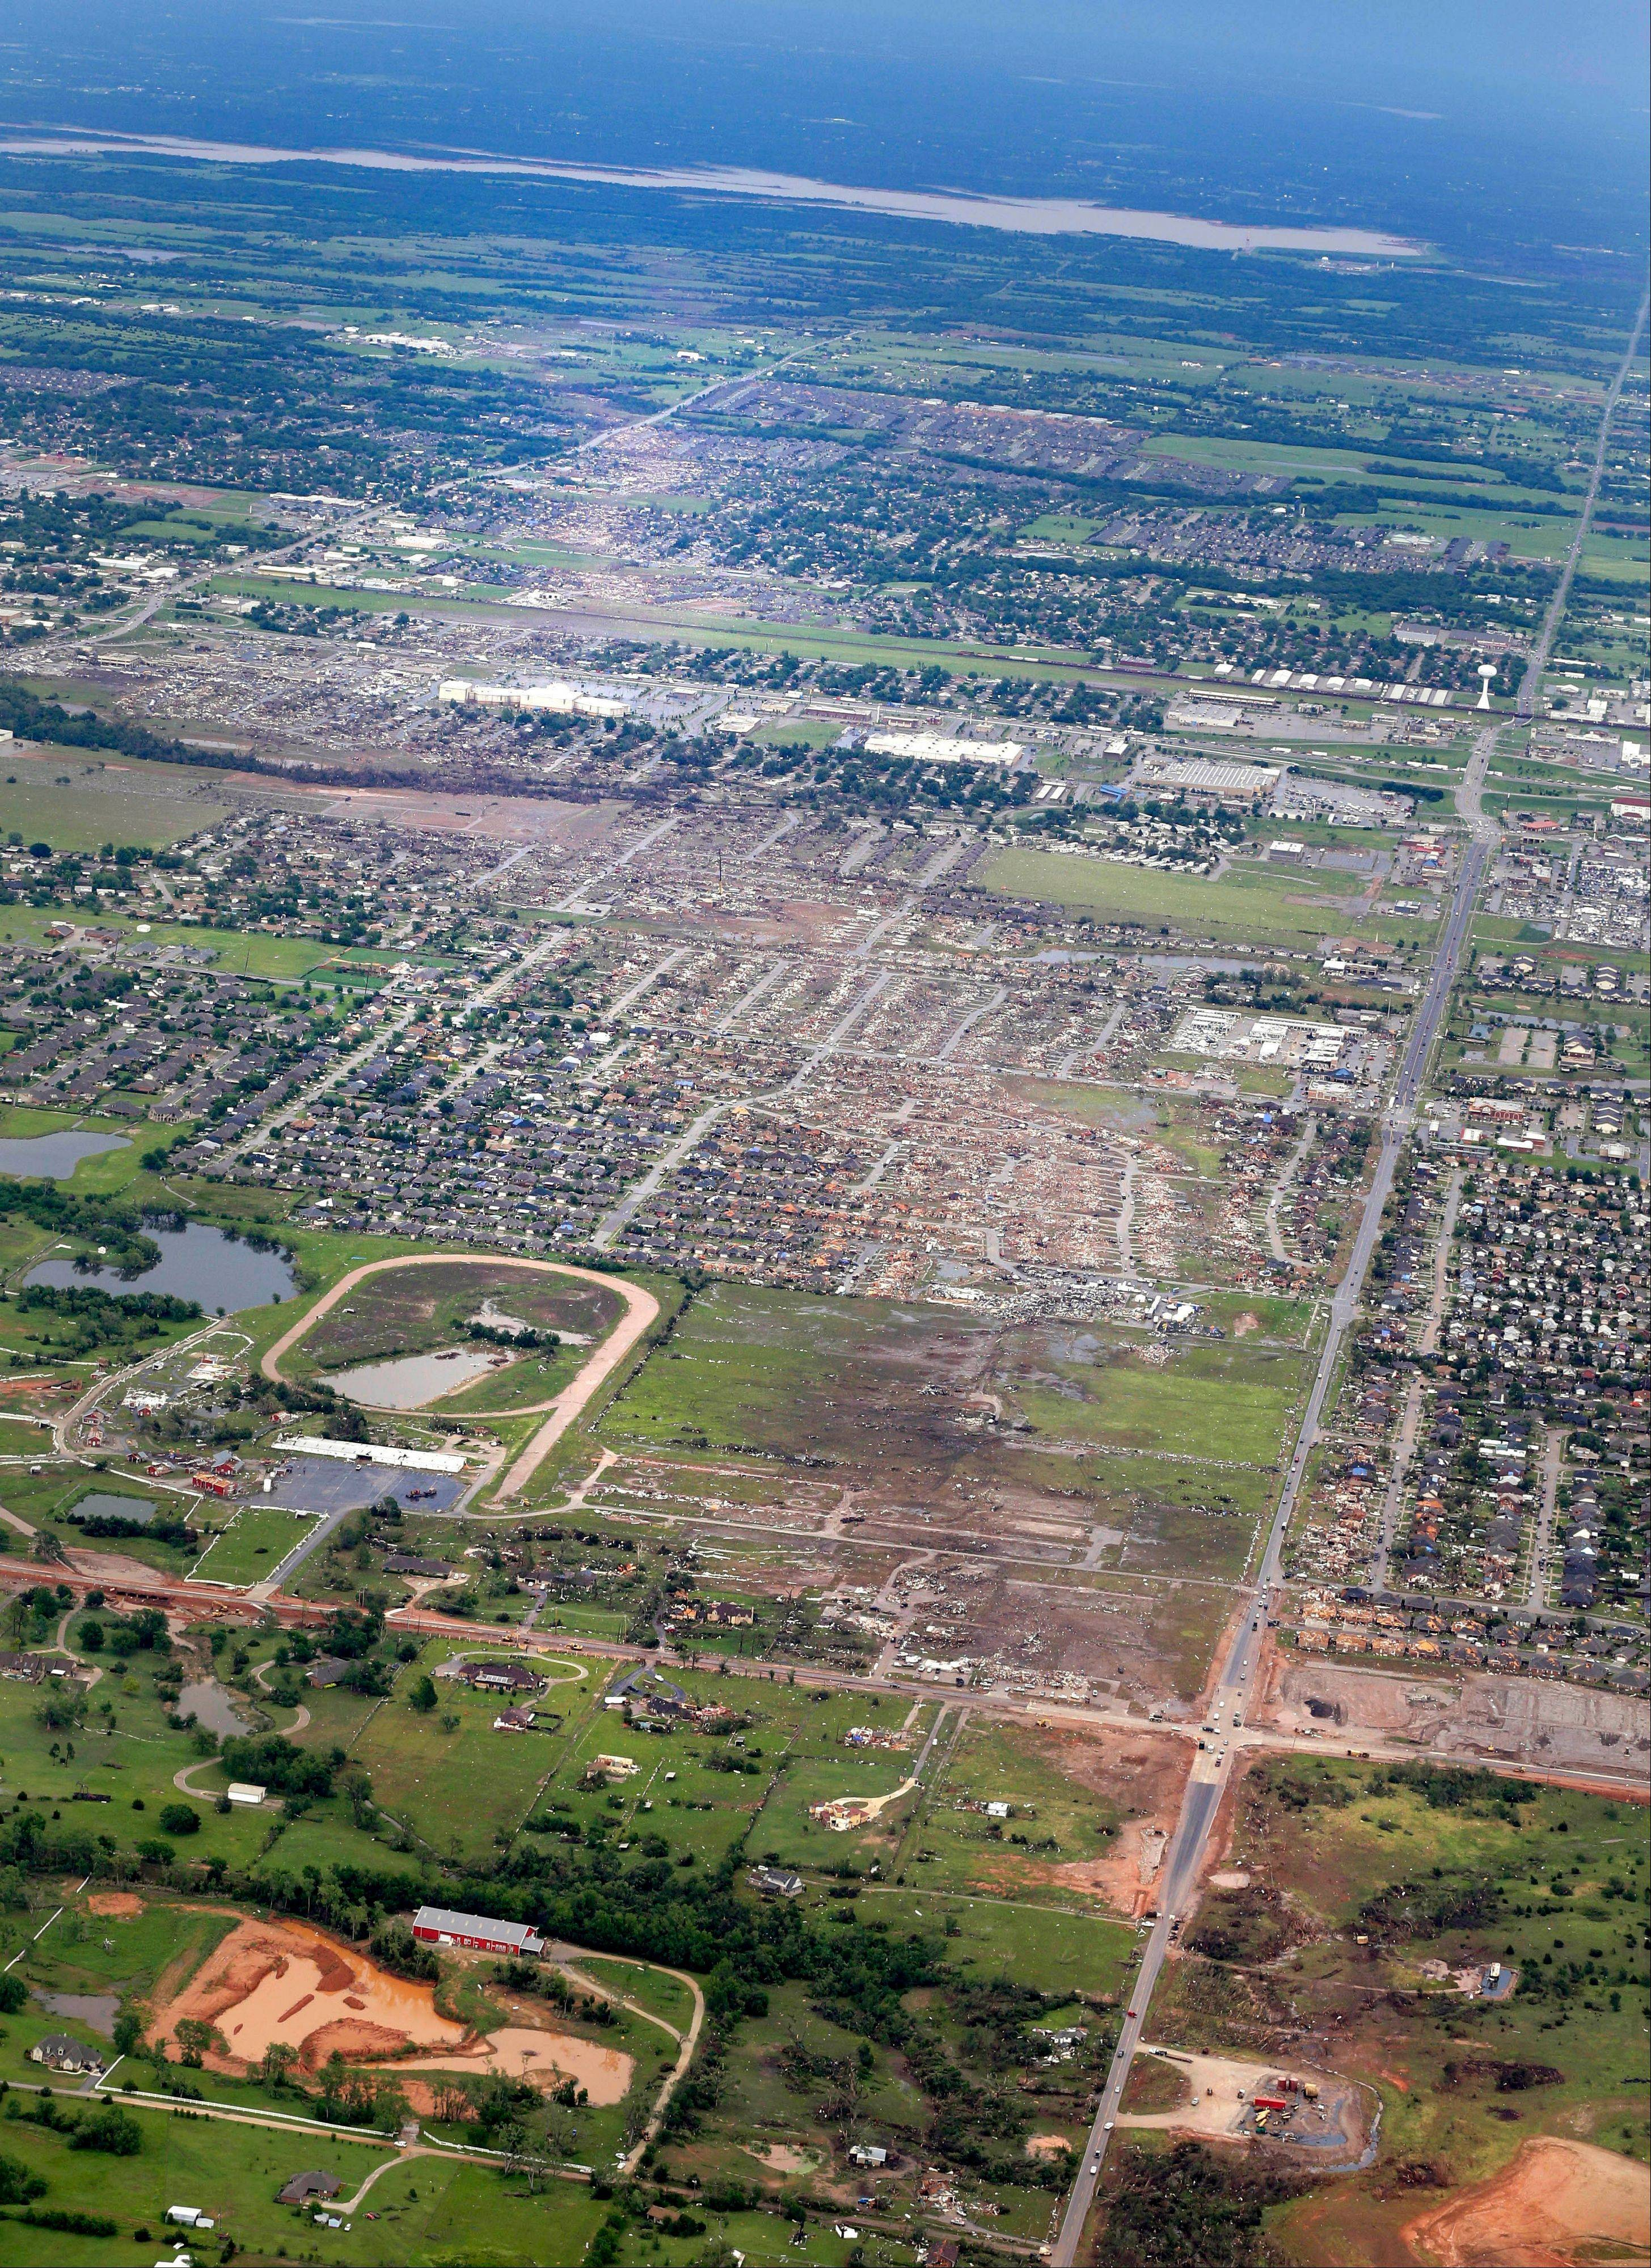 ASSOCIATED PRESS This aerial photo from a day afer the May 20 tornado shows the remains of houses in Moore, Okla. The Oklahoma City area has seen two of the extremely rare EF5 tornadoes in only 11 days. The tornado that hit El Reno had a record-breaking width of 2.6 miles. The one in Moore, a city about 25 miles away from El Reno, killed 24 people and caused widespread damage.